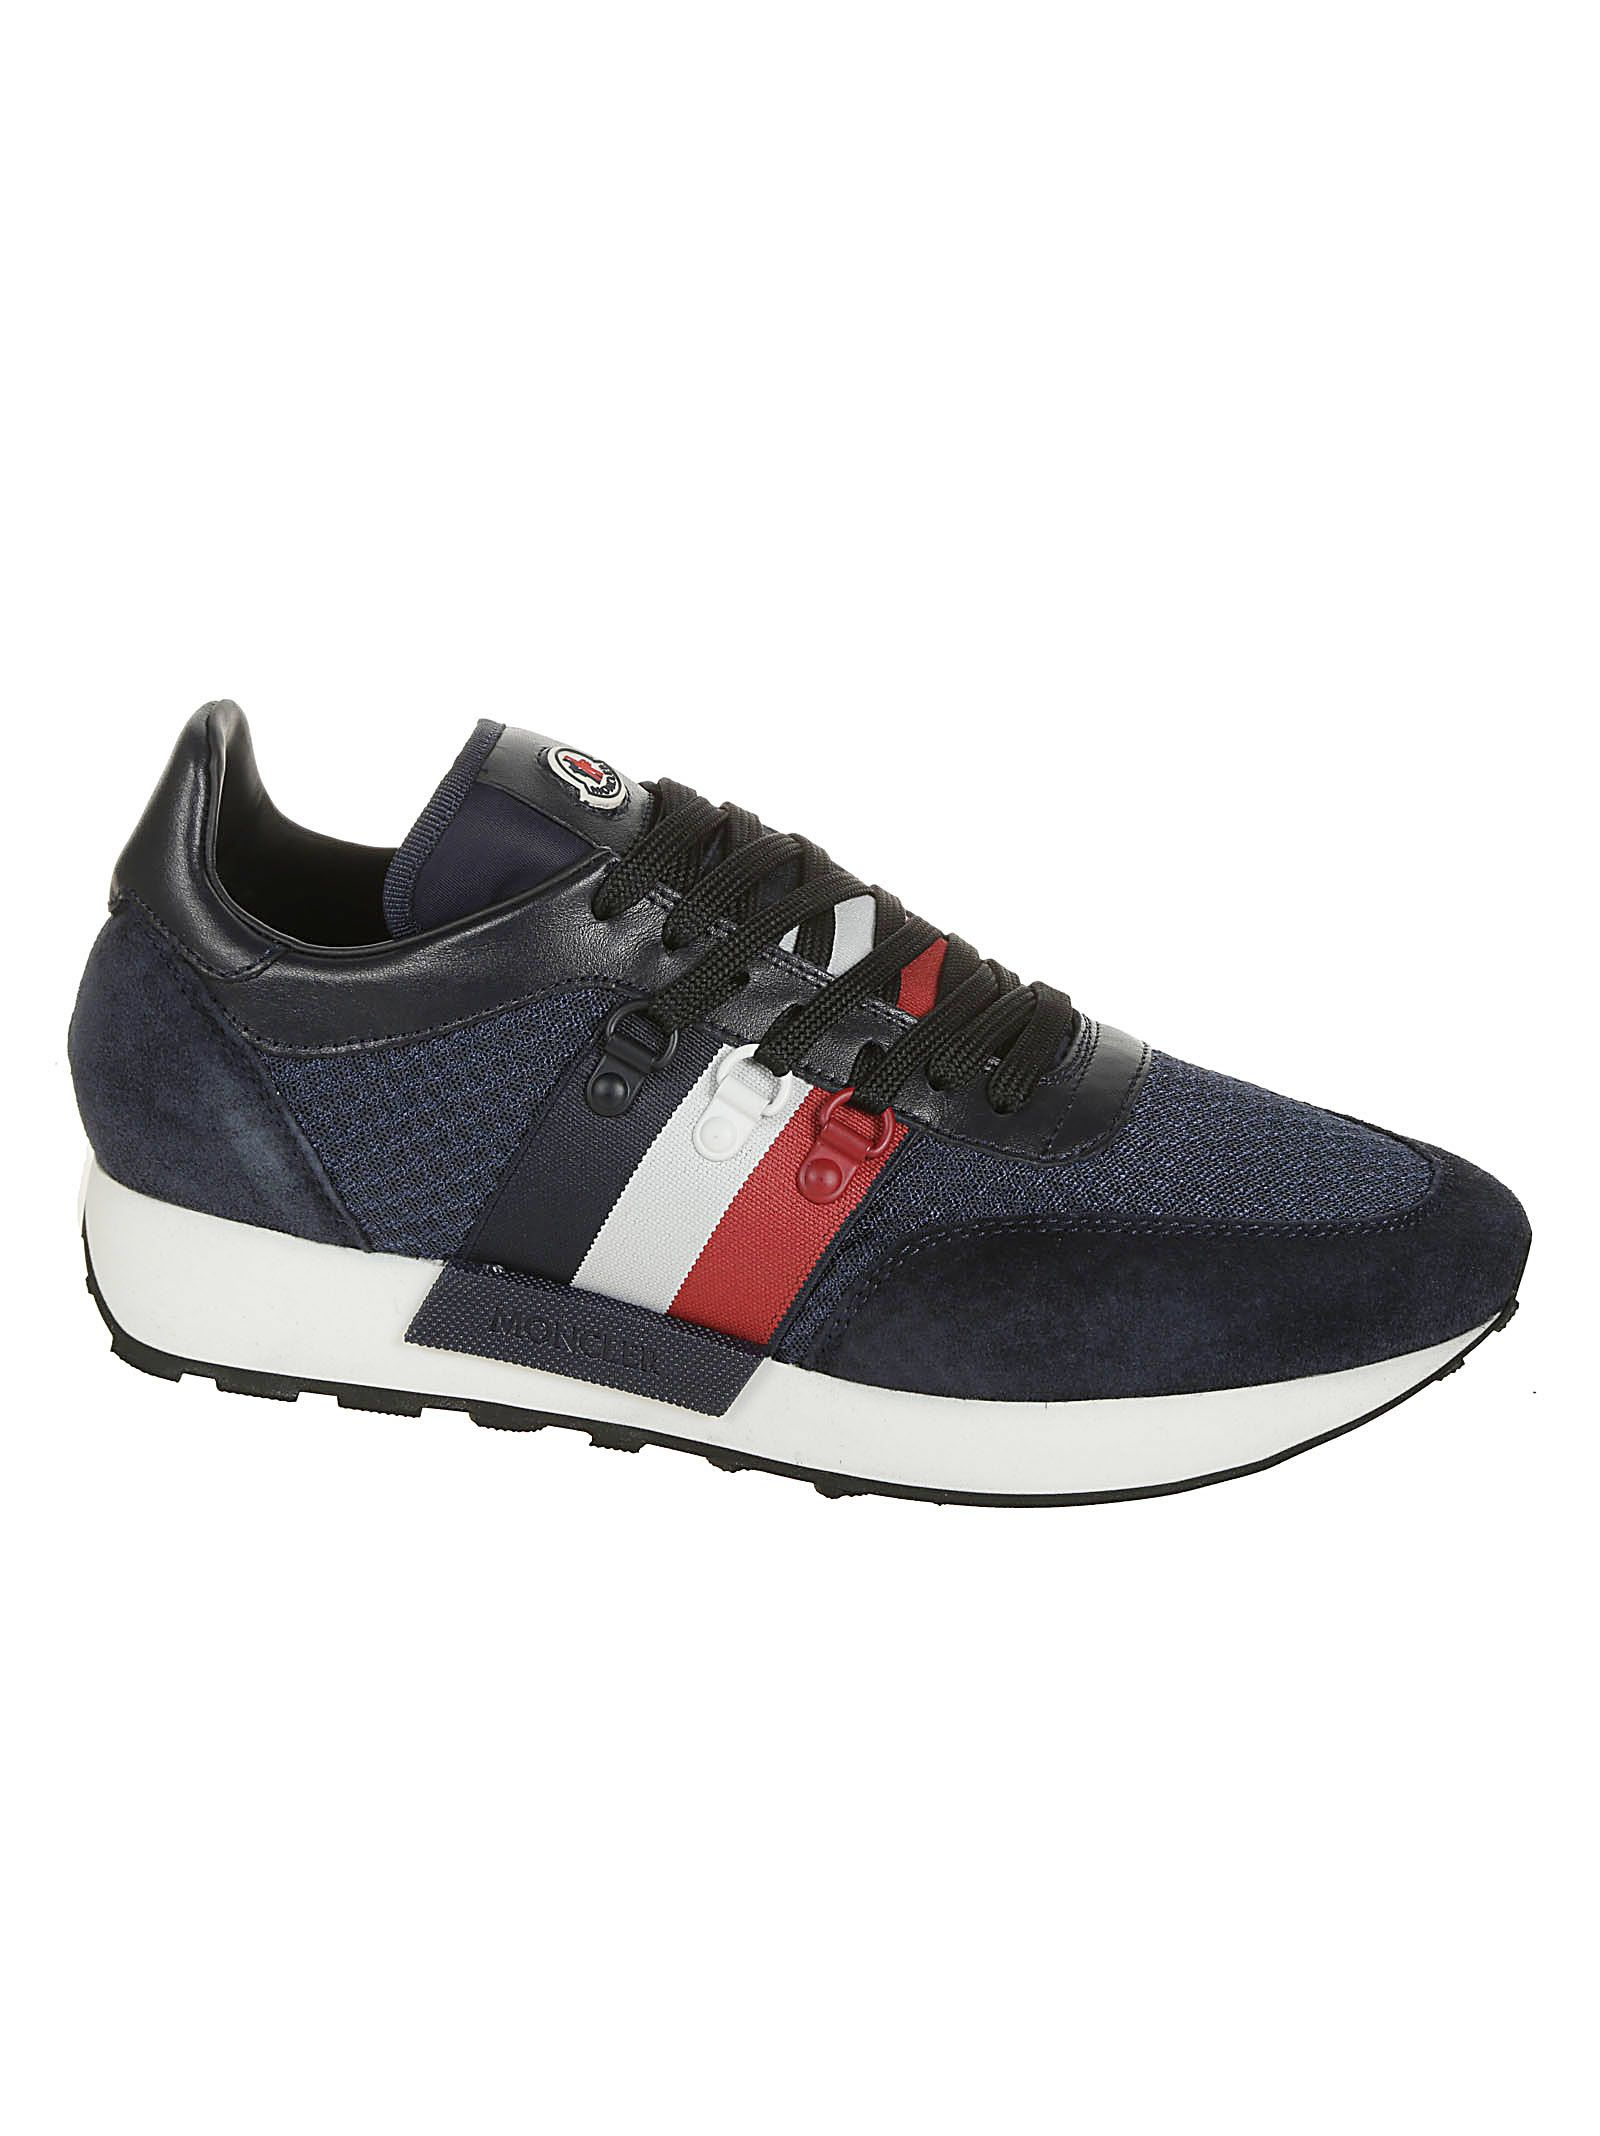 MONCLER NEW HORACE RUNNING SNEAKERS, BLUE